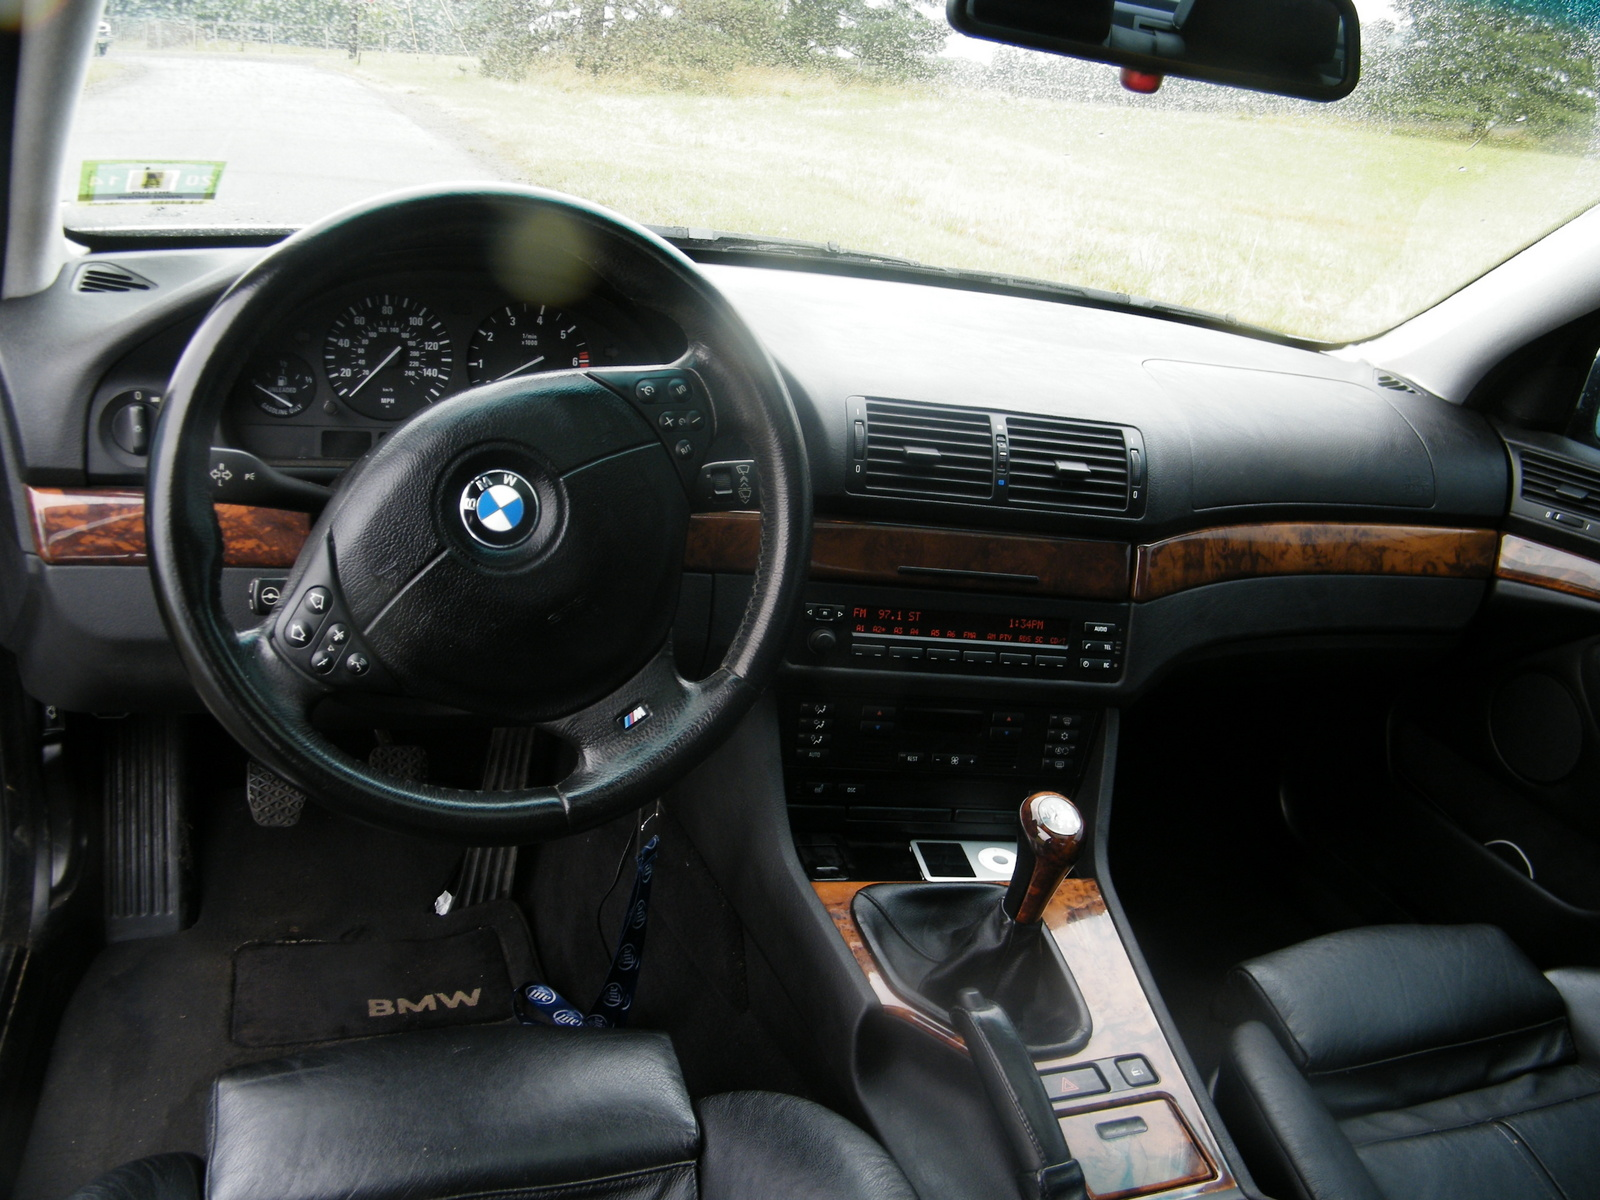 2000 bmw 5 series interior pictures cargurus. Black Bedroom Furniture Sets. Home Design Ideas